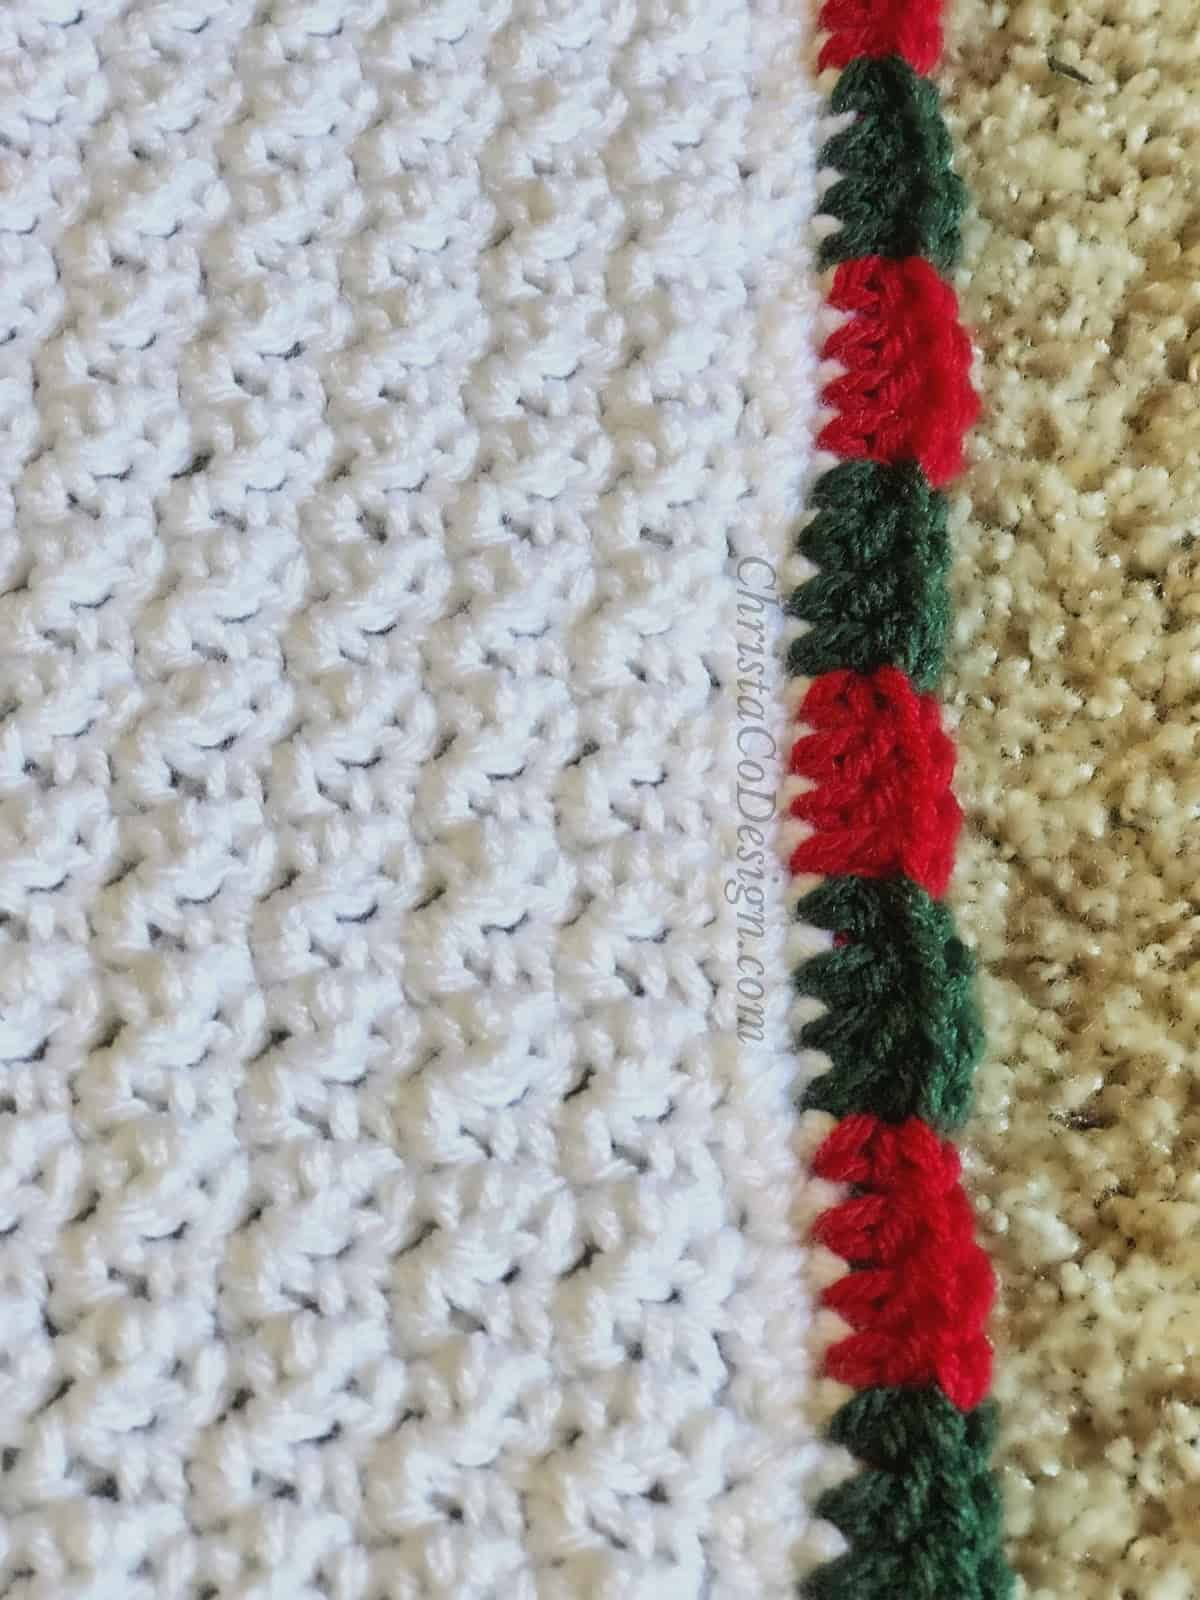 Red and green double crochet border on blanket.